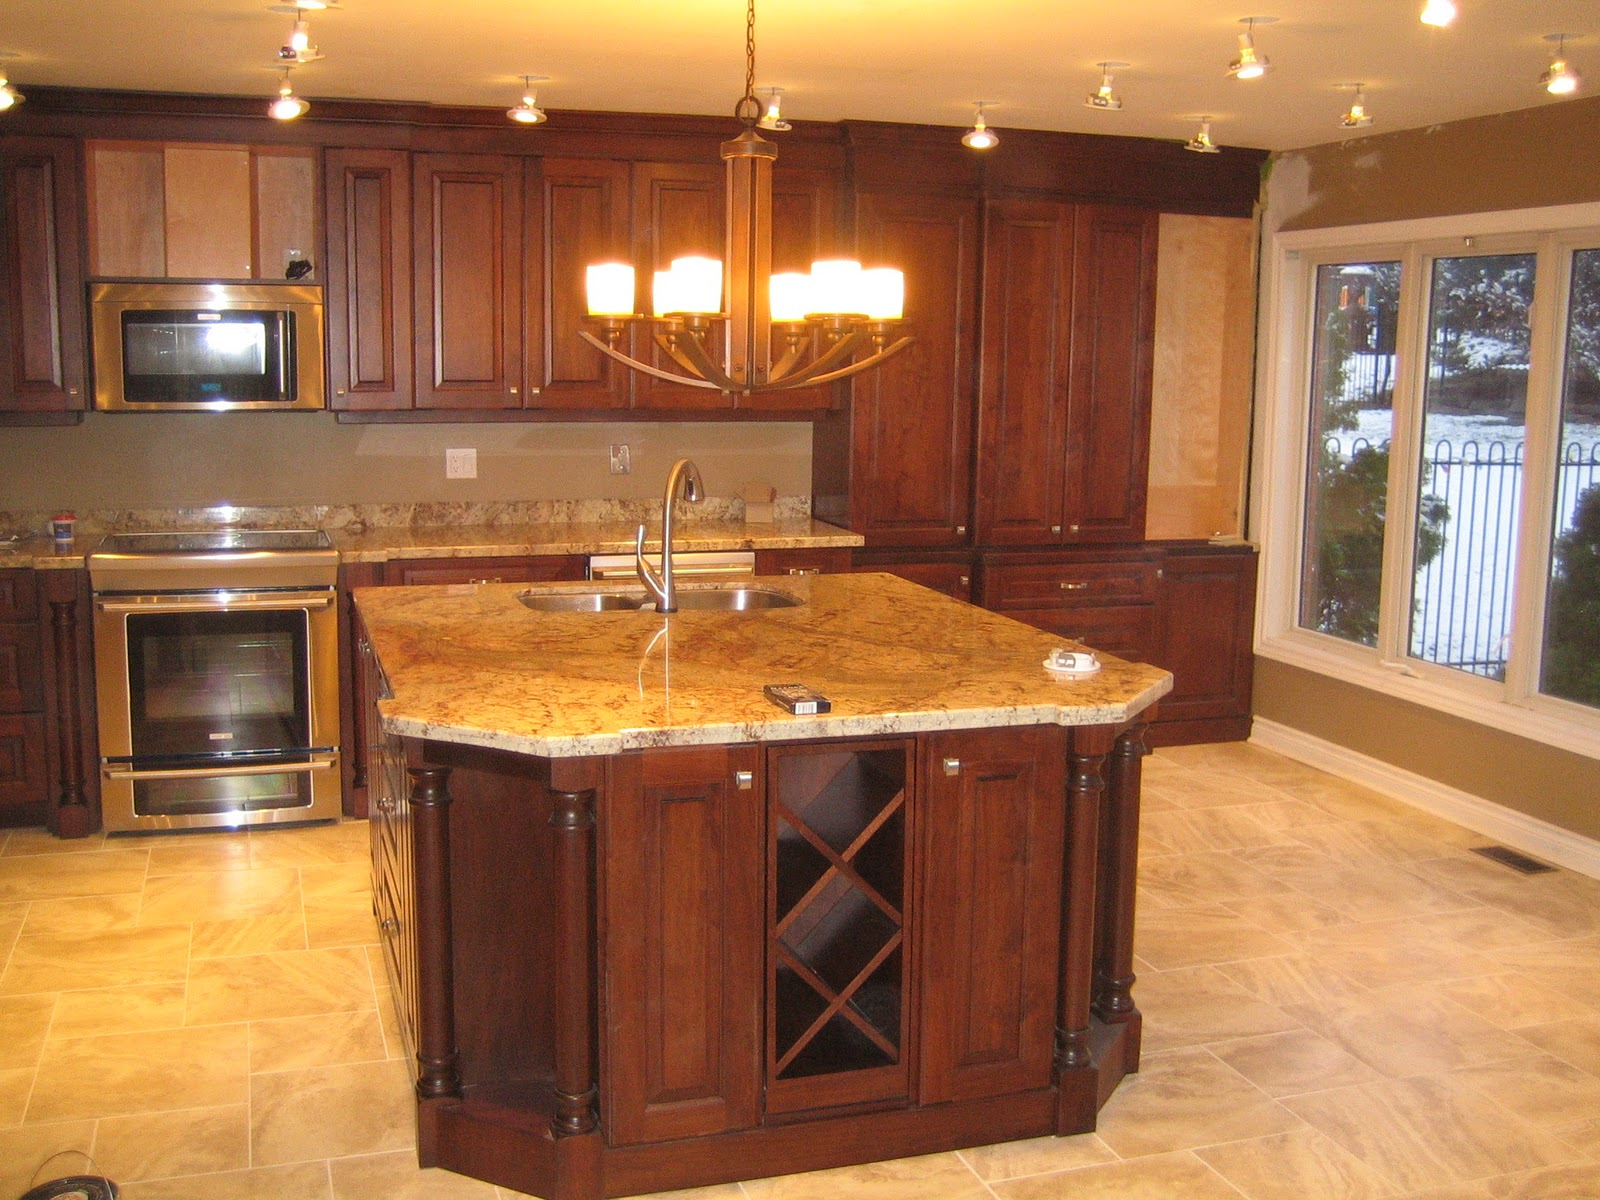 Kitchen Cabinets Newmarket Work Of Tom Ablett And Brian Hickling, Please Feel Free To